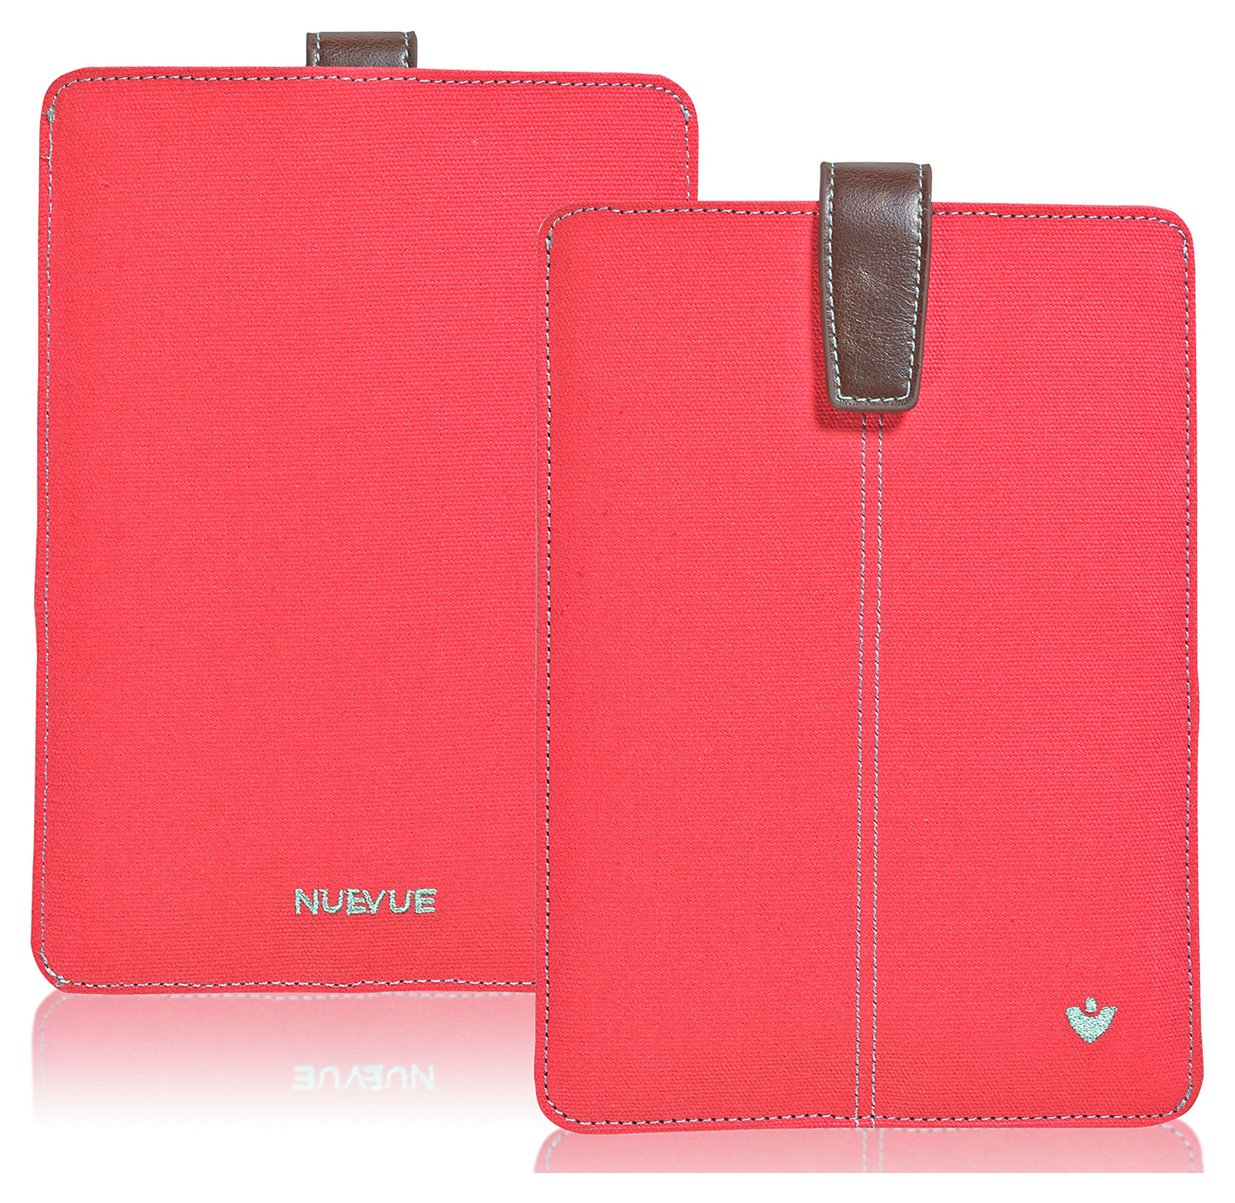 SALE On NueVue Canvas Coral Apple IPad Mini Case Pink